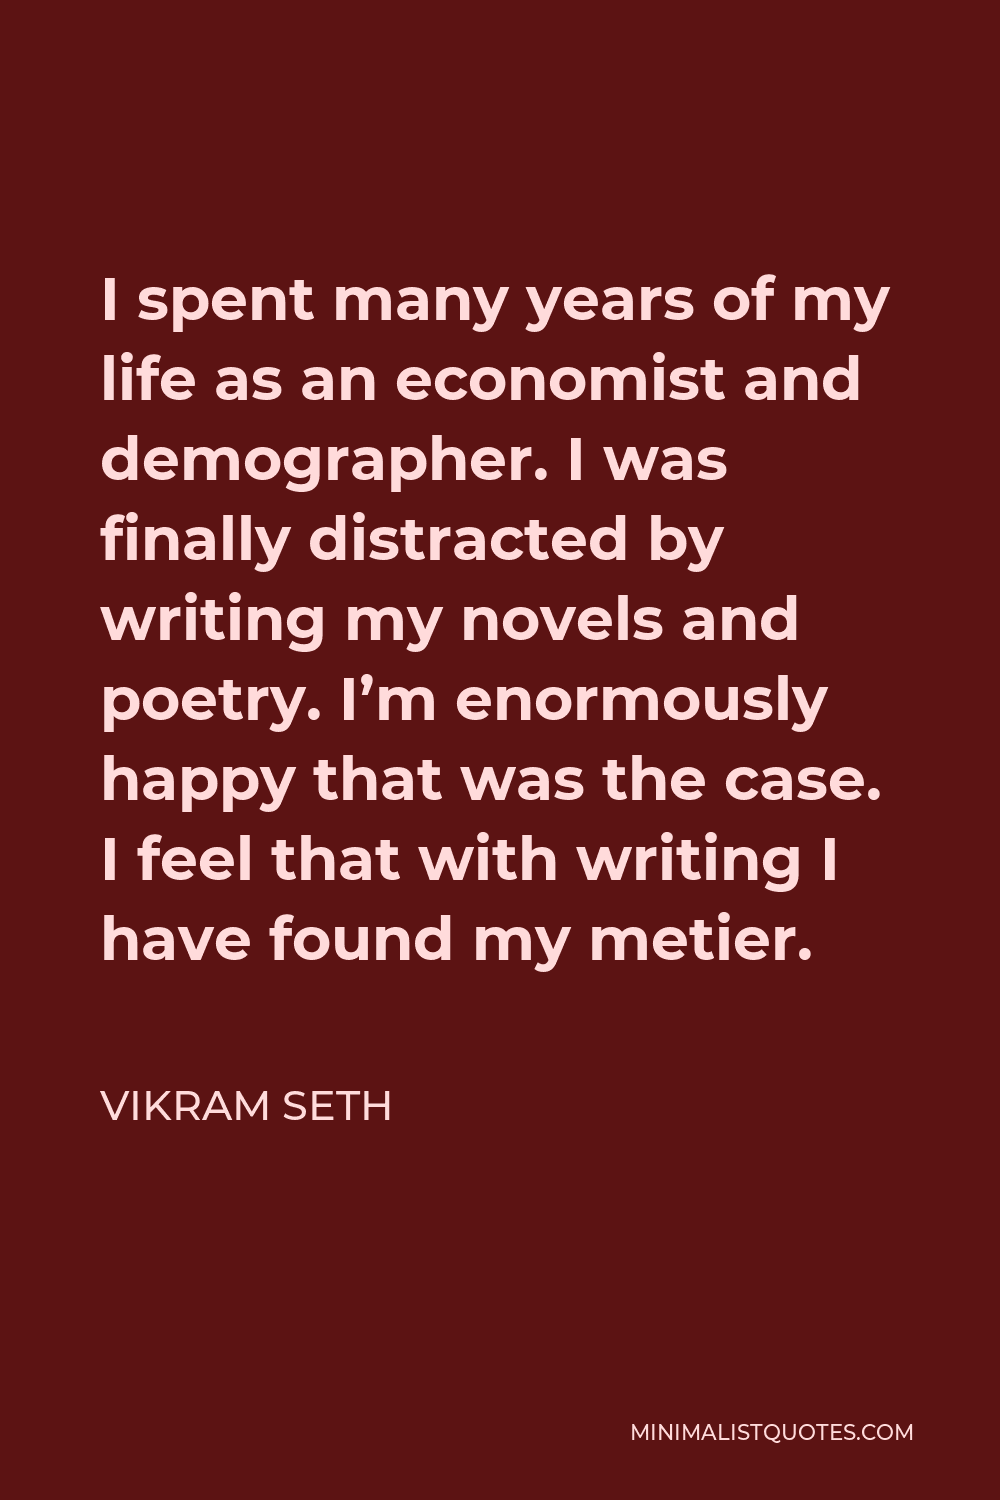 Vikram Seth Quote - I spent many years of my life as an economist and demographer. I was finally distracted by writing my novels and poetry. I'm enormously happy that was the case. I feel that with writing I have found my metier.